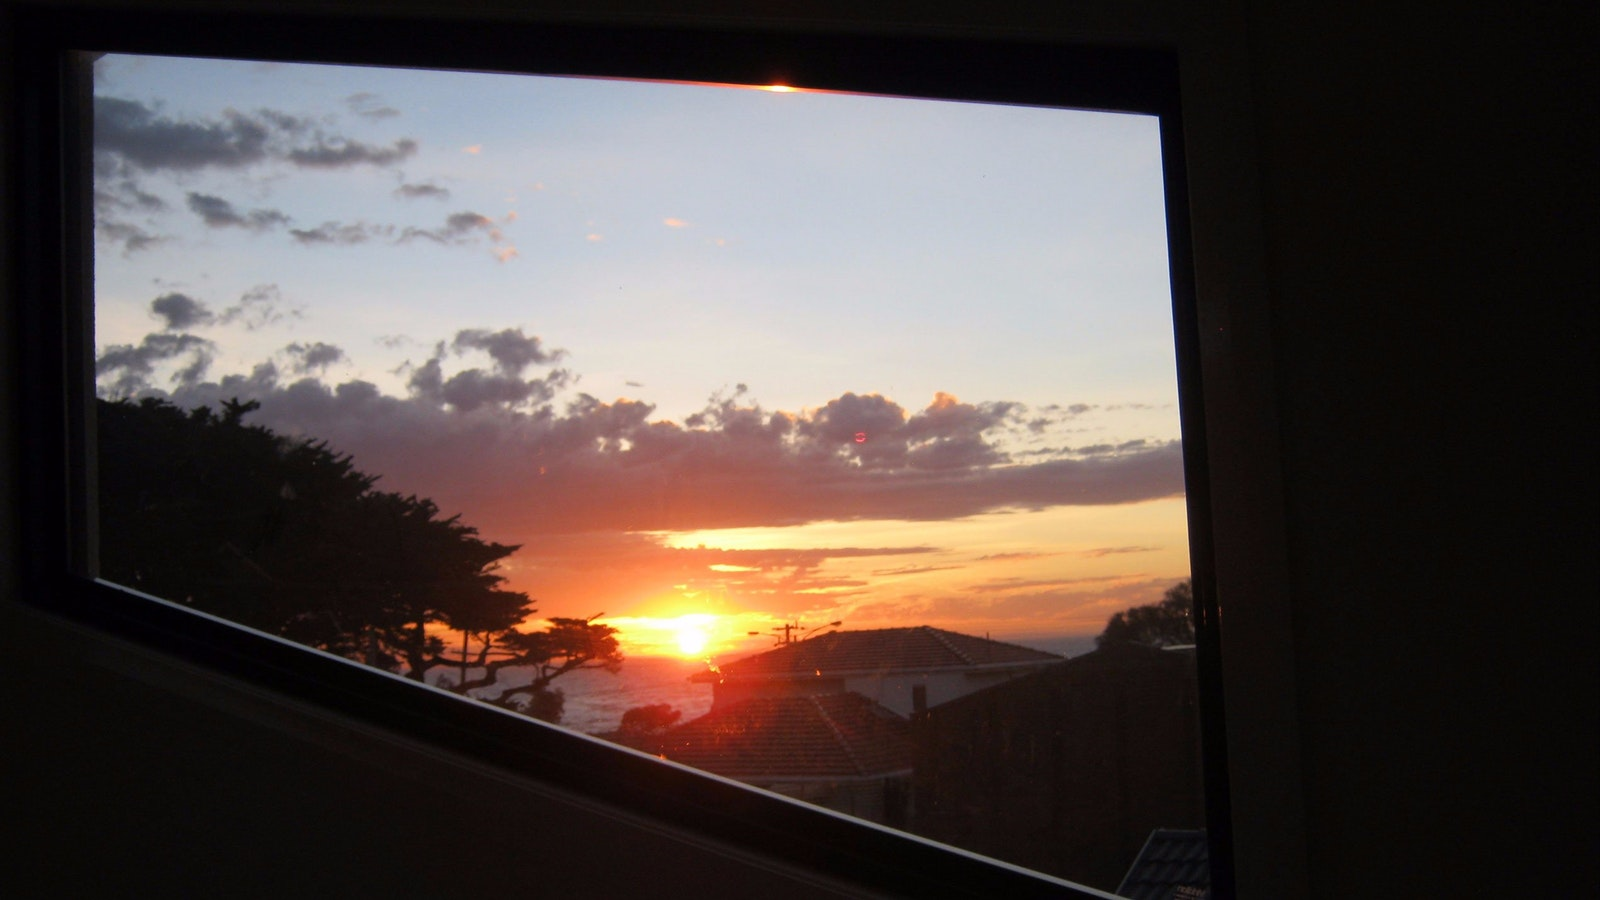 Sunset view through the window